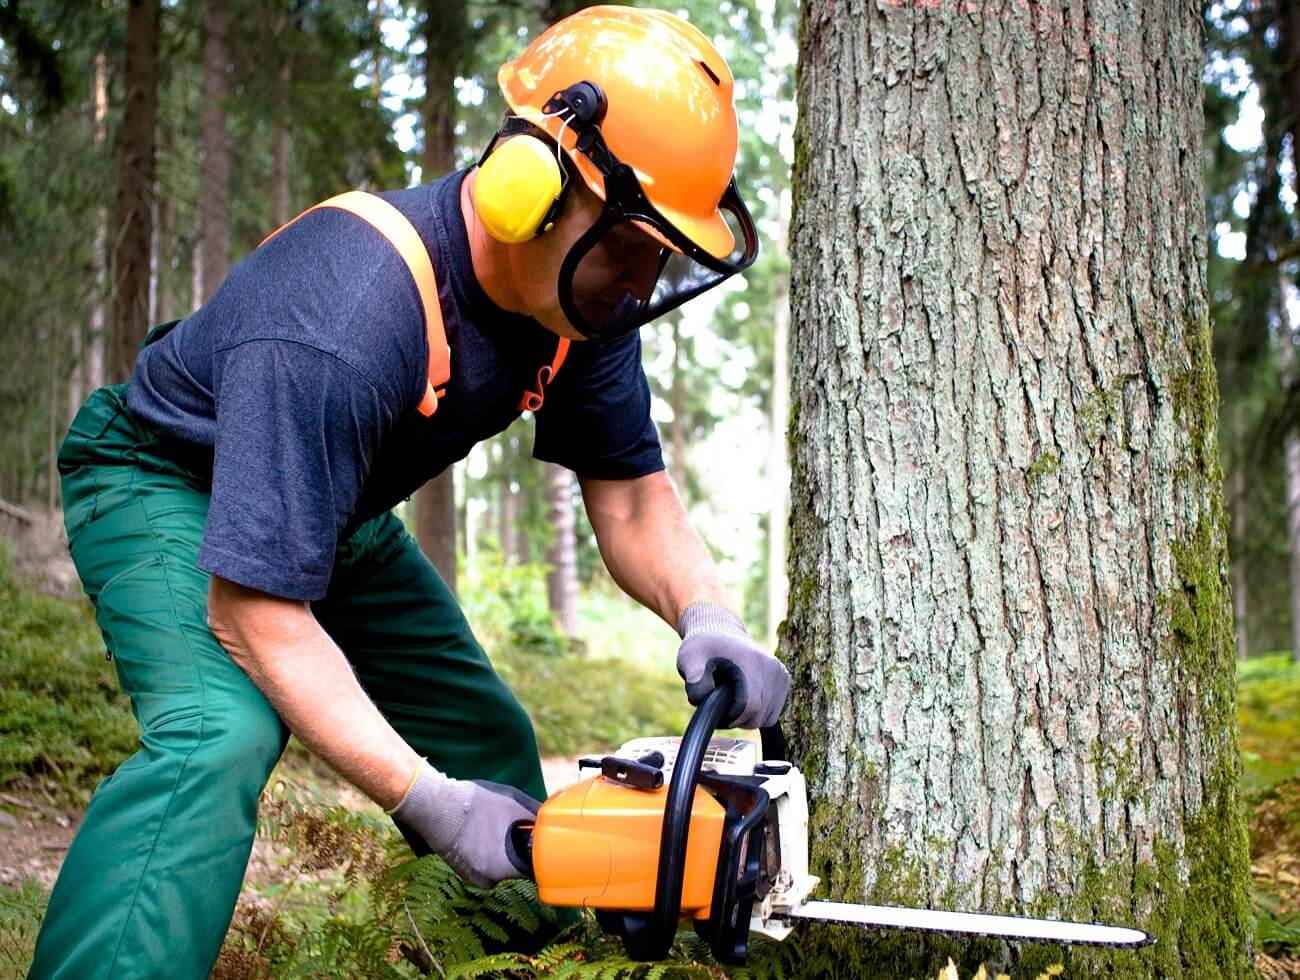 The Hammocks FL Tree Trimming and Stump Grinding Services Home Page-We Offer Tree Trimming Services, Tree Removal, Tree Pruning, Tree Cutting, Residential and Commercial Tree Trimming Services, Storm Damage, Emergency Tree Removal, Land Clearing, Tree Companies, Tree Care Service, Stump Grinding, and we're the Best Tree Trimming Company Near You Guaranteed!